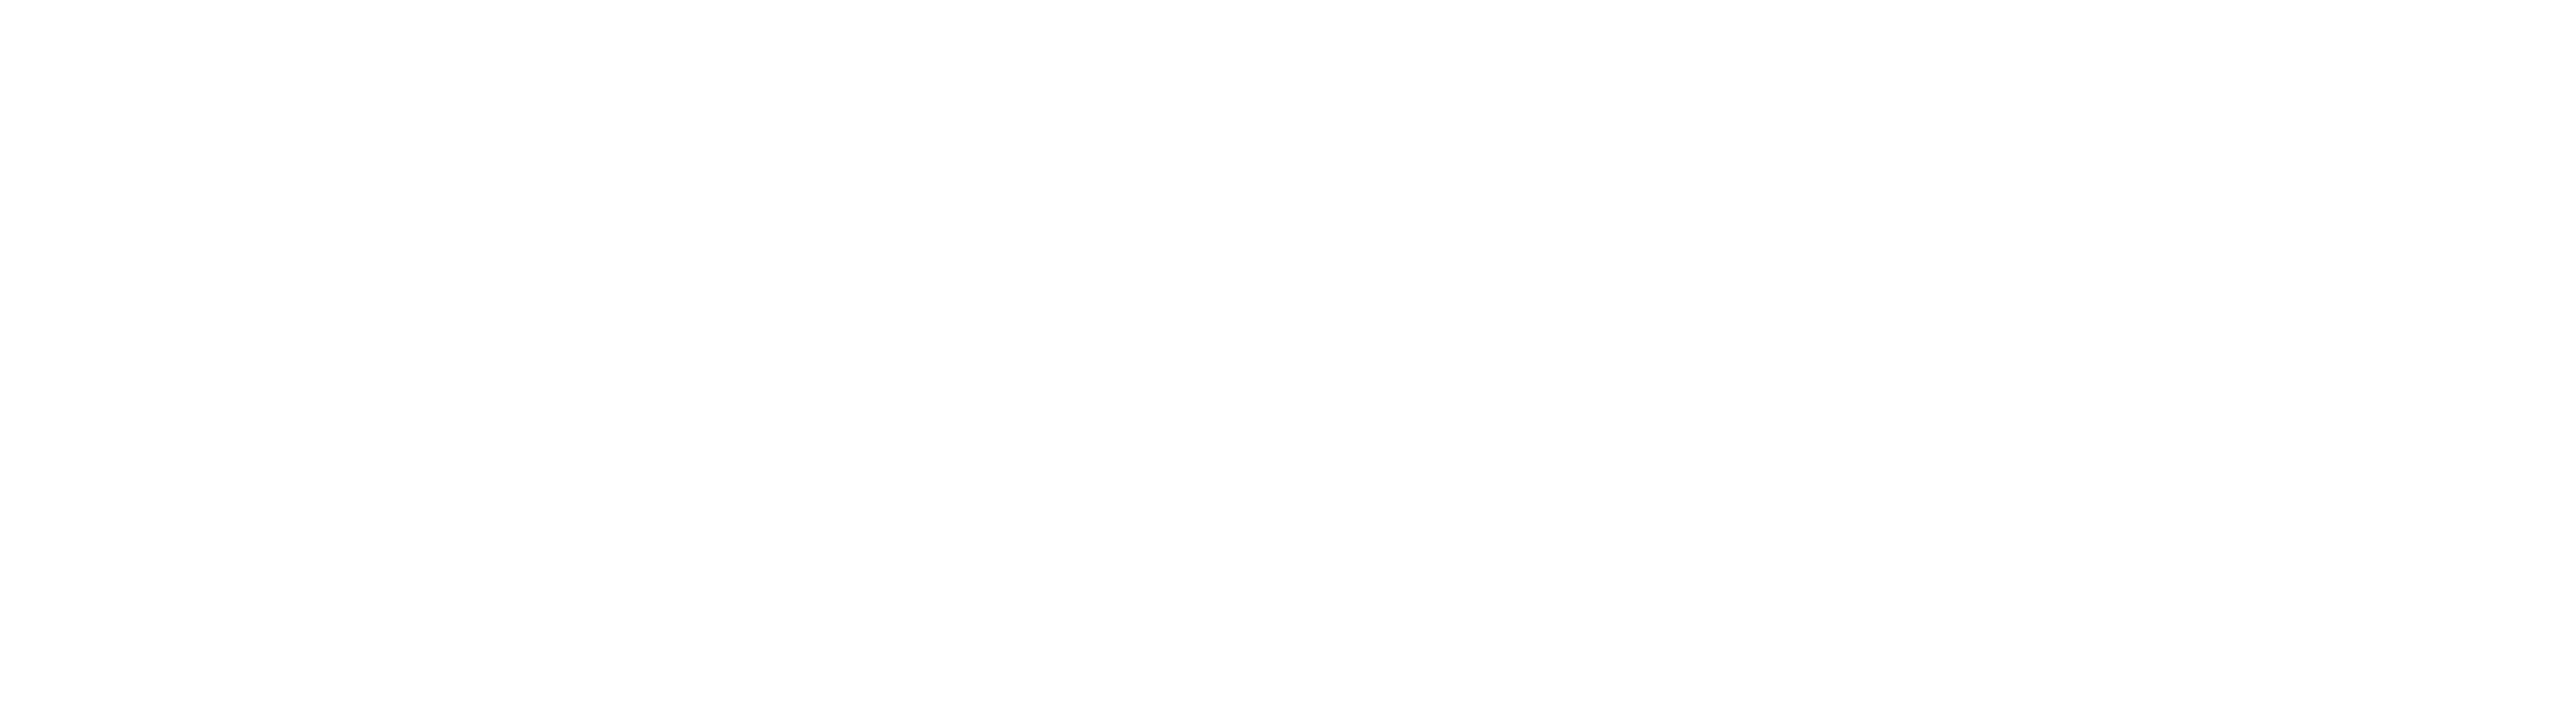 Duprees Root 88 Flowers - Flower Delivery in Finleyville, PA